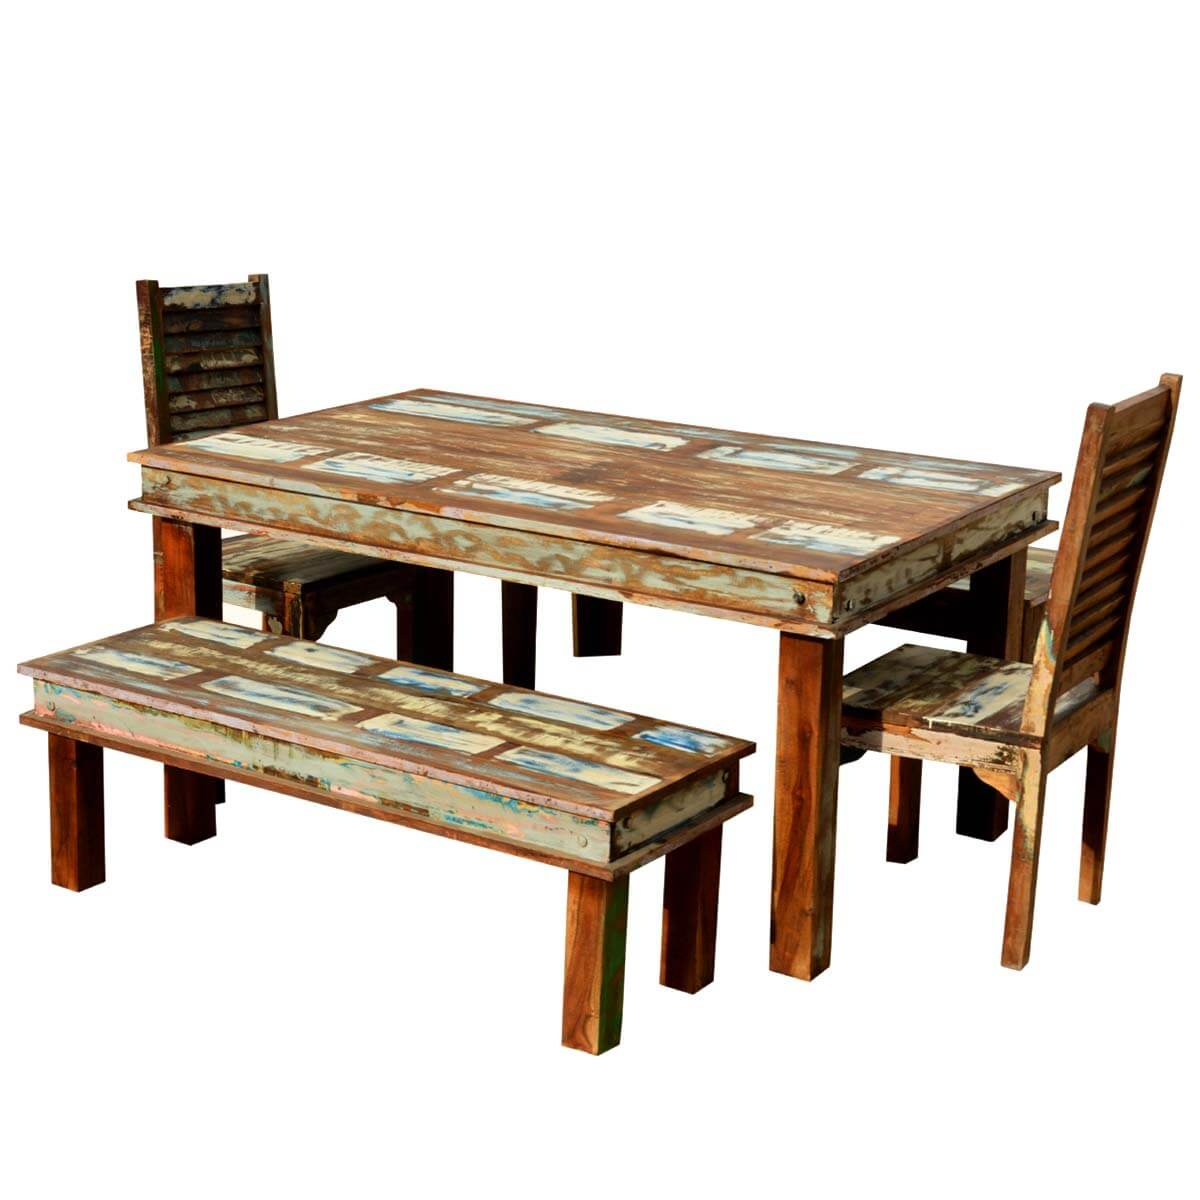 Sierra Reclaimed Wood Furniture Dining Table with 2 Chairs  : 73922 from www.sierralivingconcepts.com size 1200 x 1200 jpeg 122kB